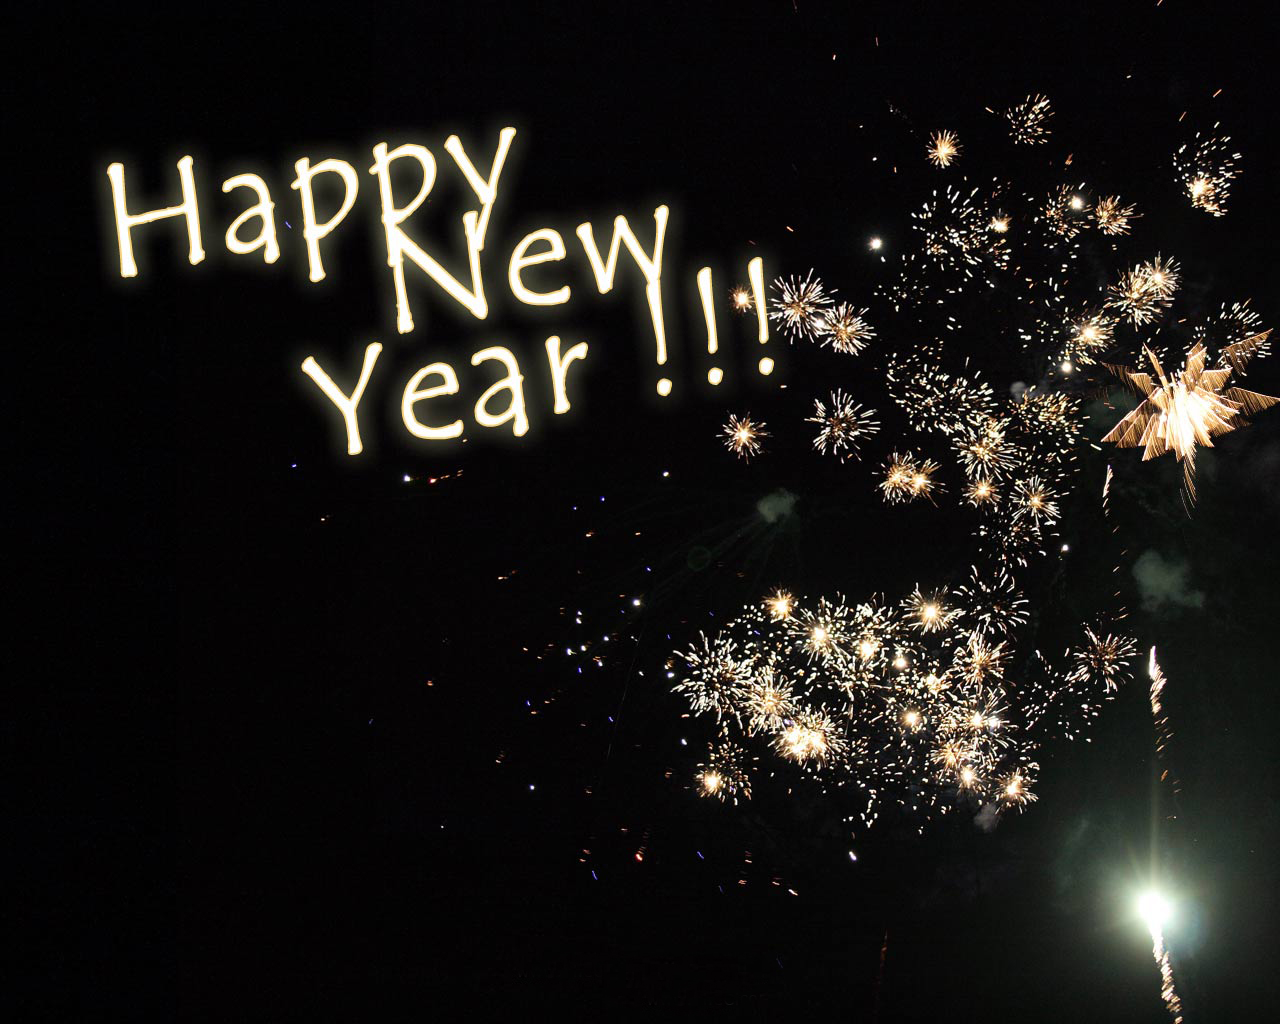 new year eve wallpapers 2014 53 wallpapers adorable new years eve desktop themes new year 2018